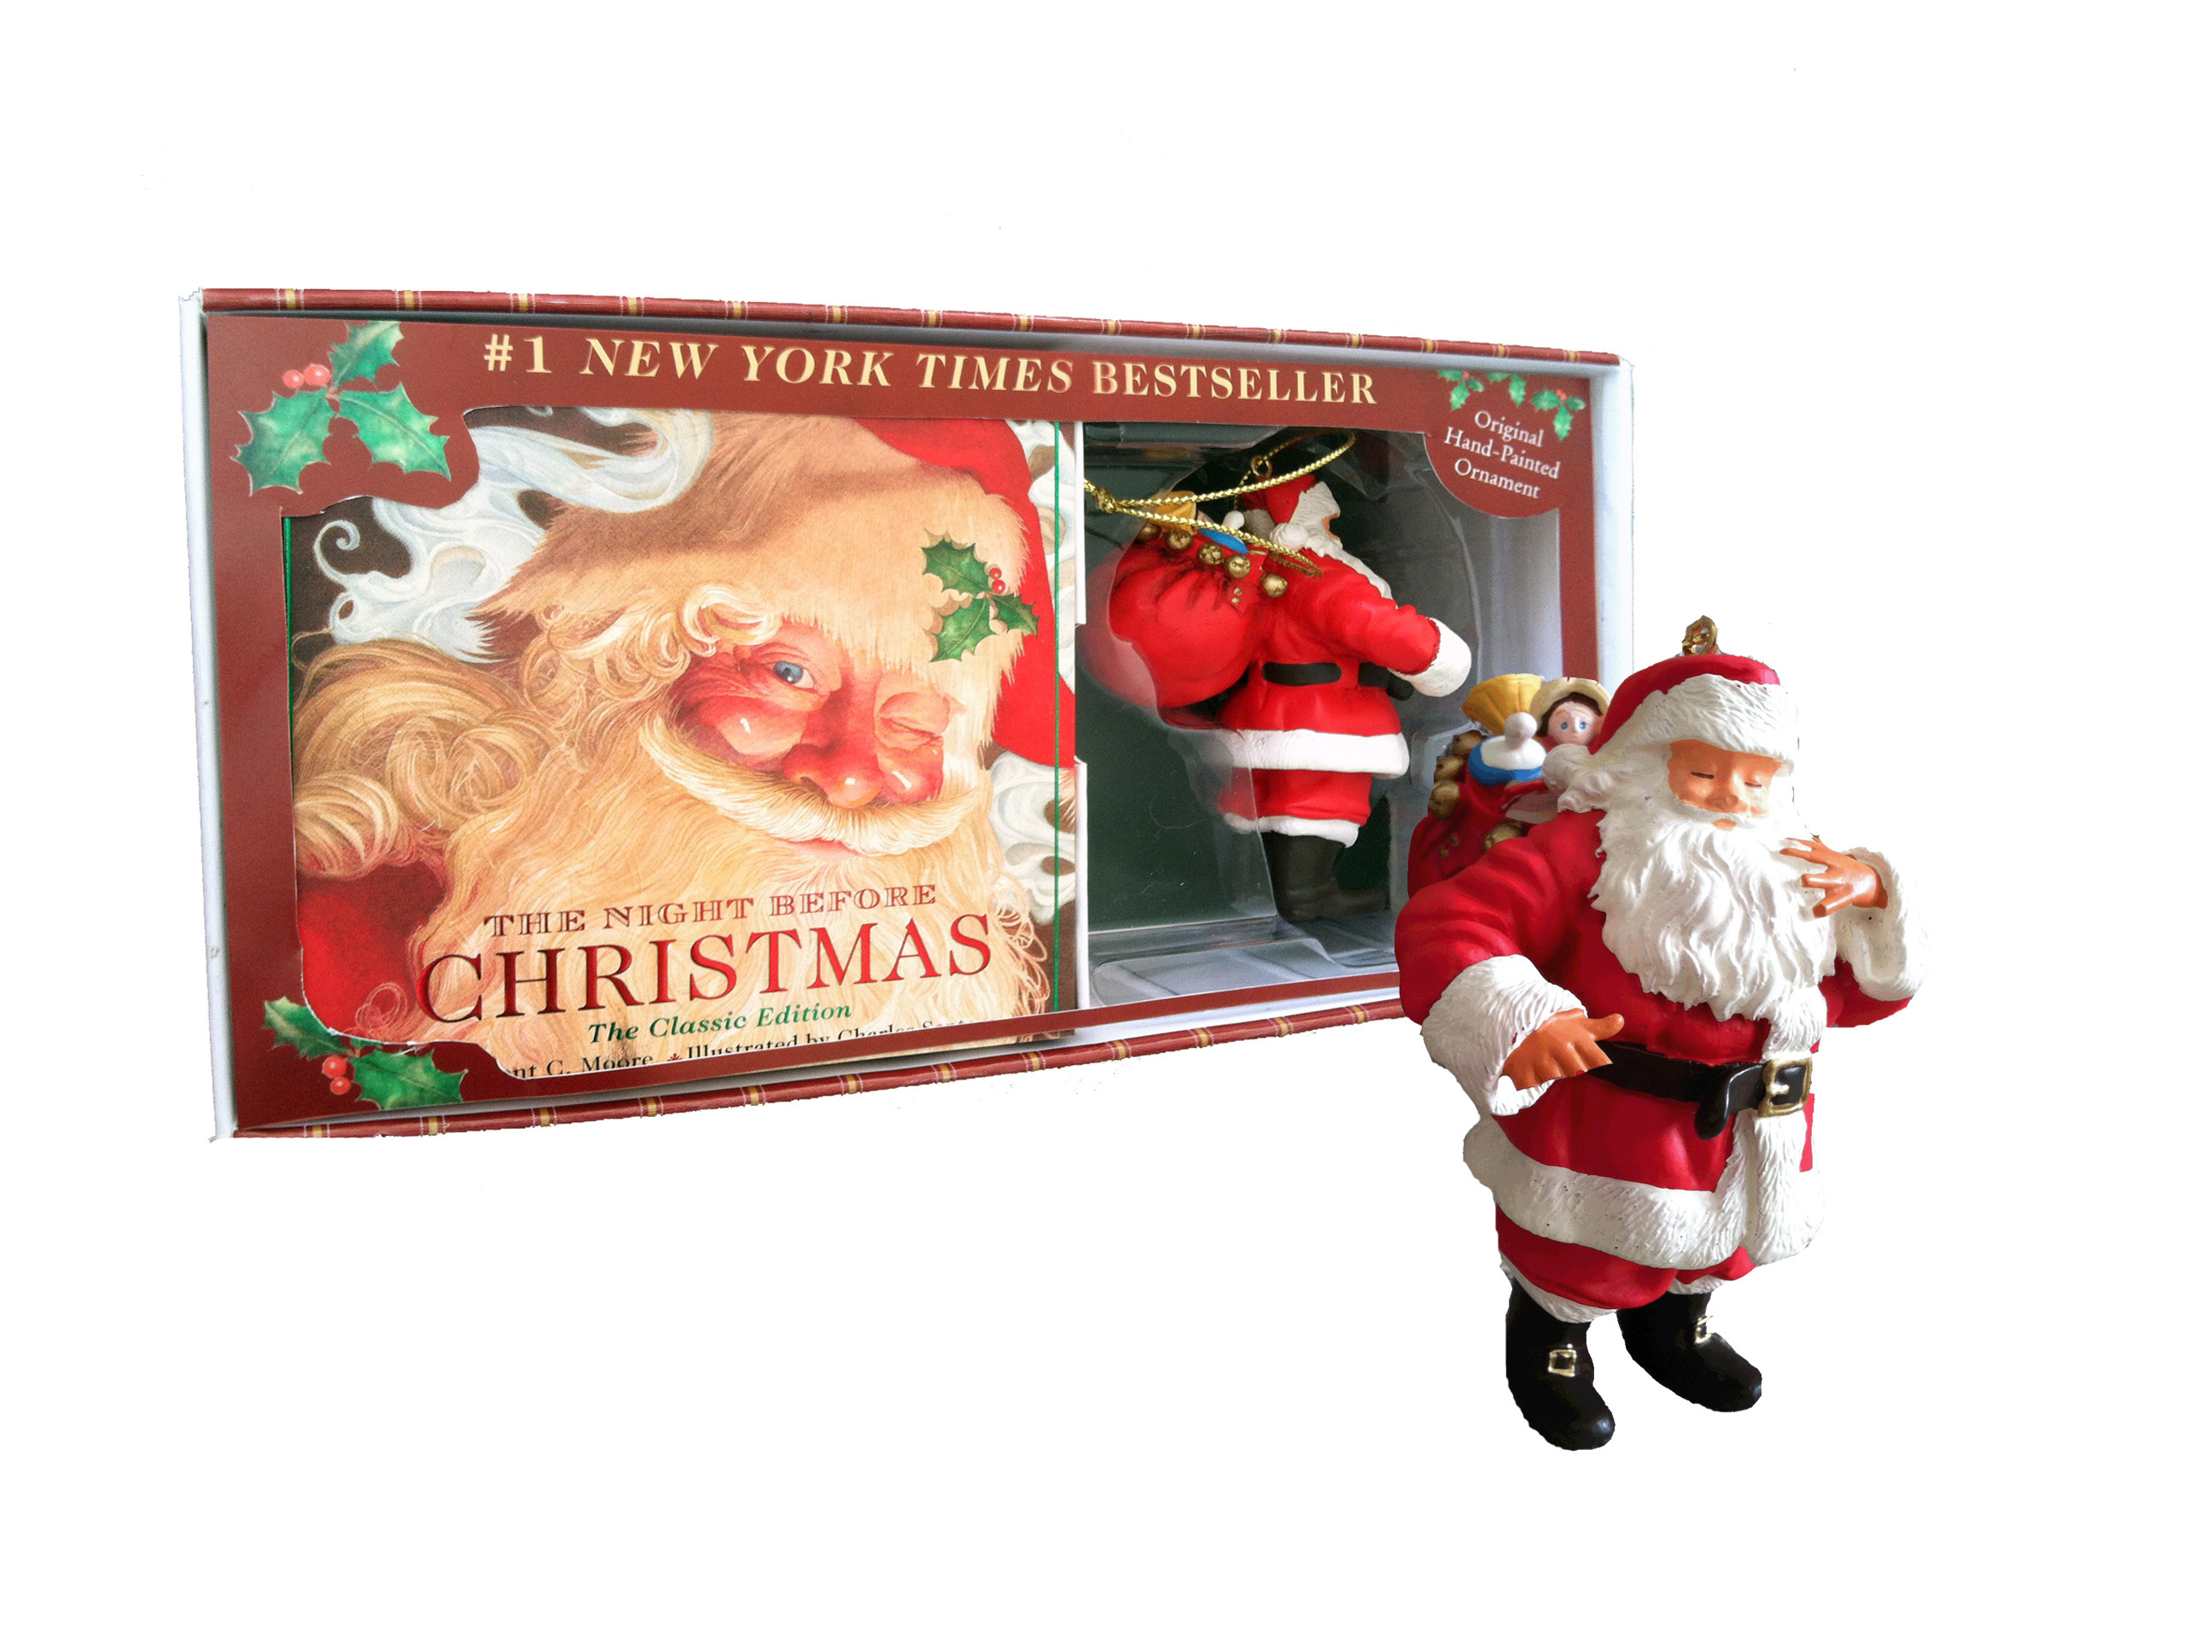 Night before christmas keepsake gift set 9781604334371 hr